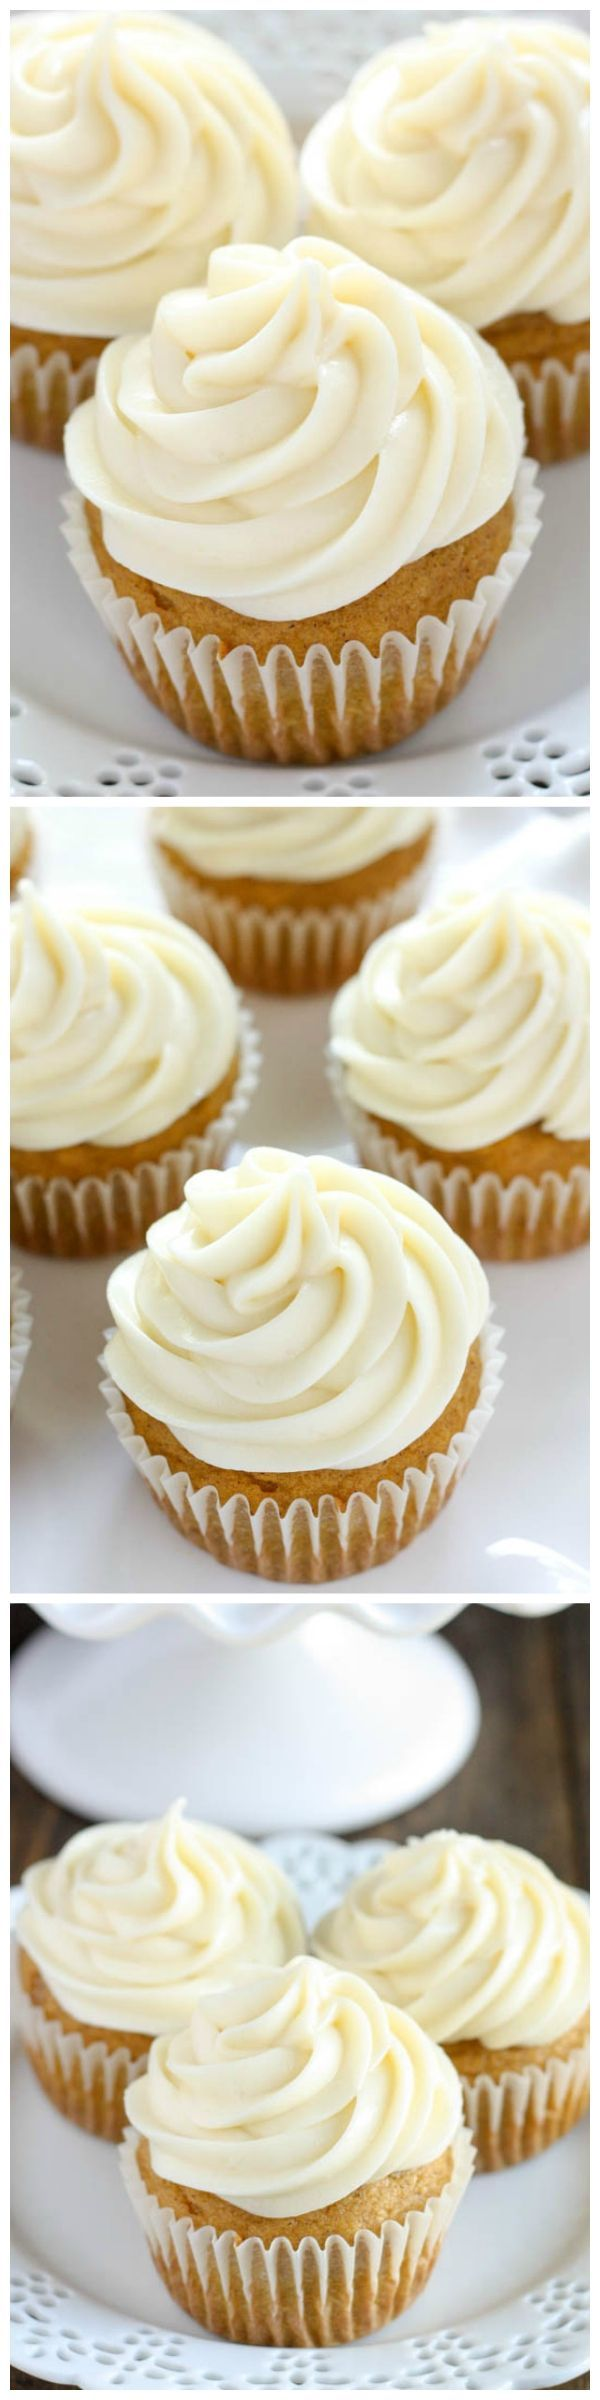 Pumpkin Cupcakes with Cream Cheese Frosting - Moist and sweet pumpkin cupcakes with an easy cream cheese frosting. These cupcakes are perfect for pumpkin lovers!